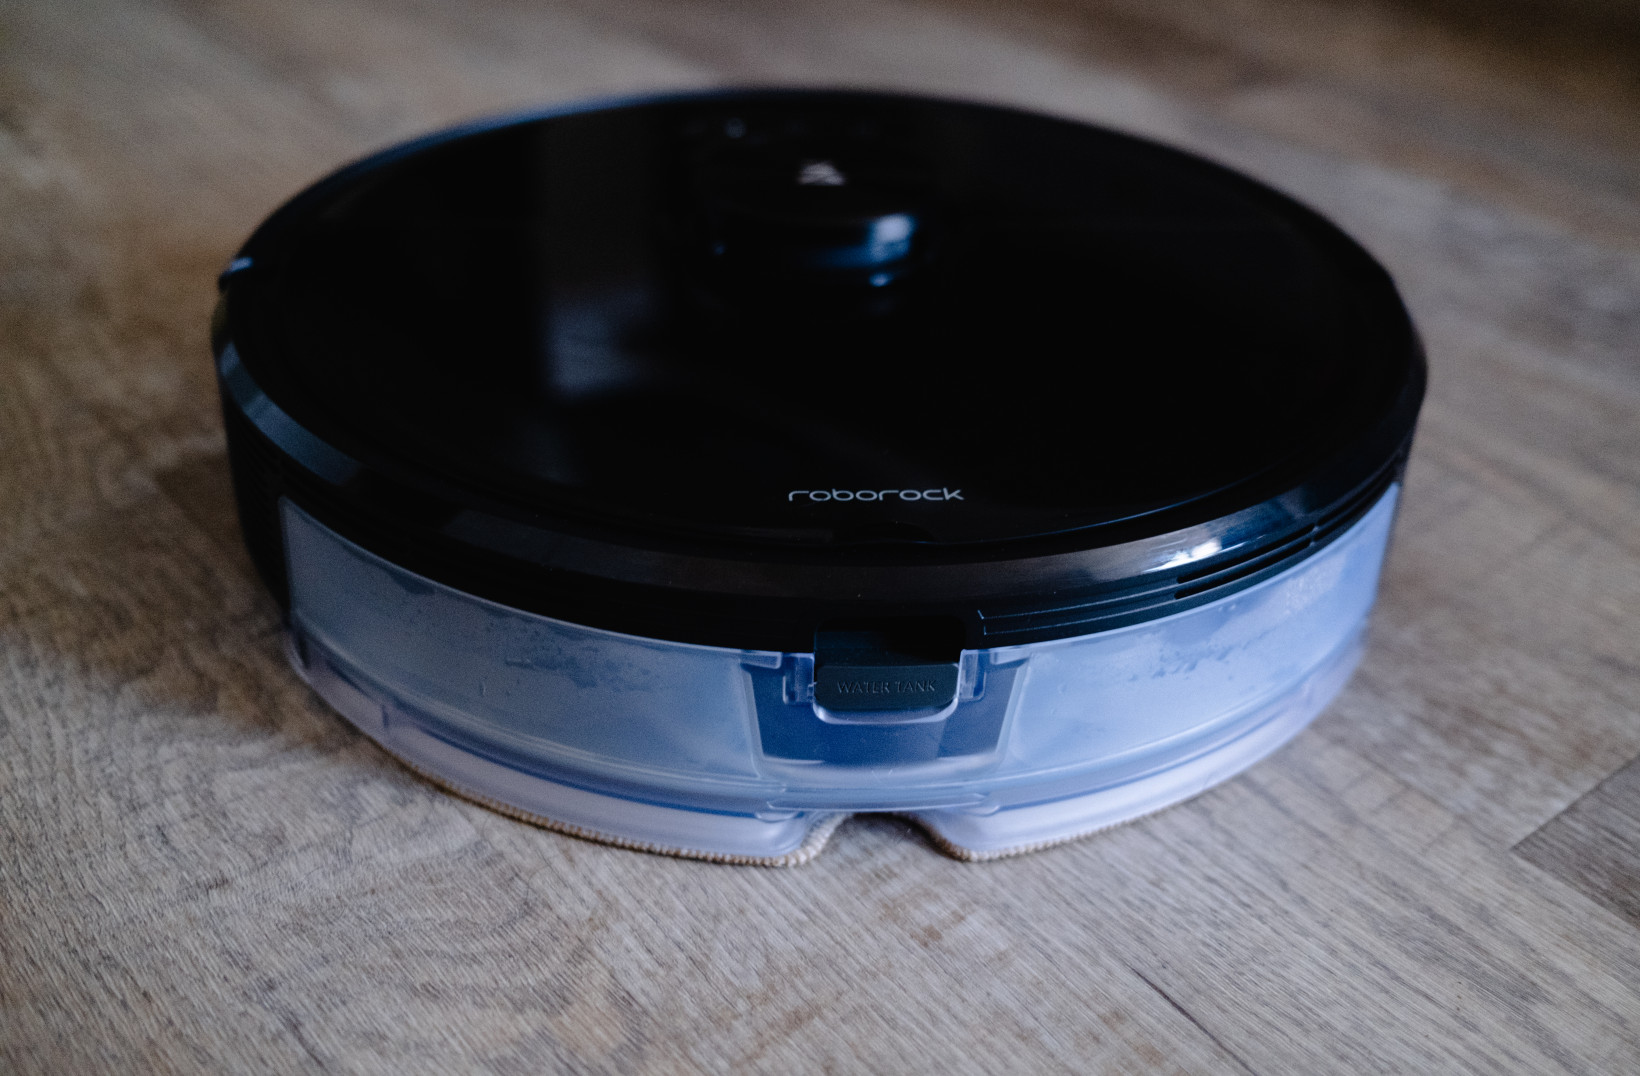 Roborock's S6 MaxV robot vacuum is too smart to do the dirty work